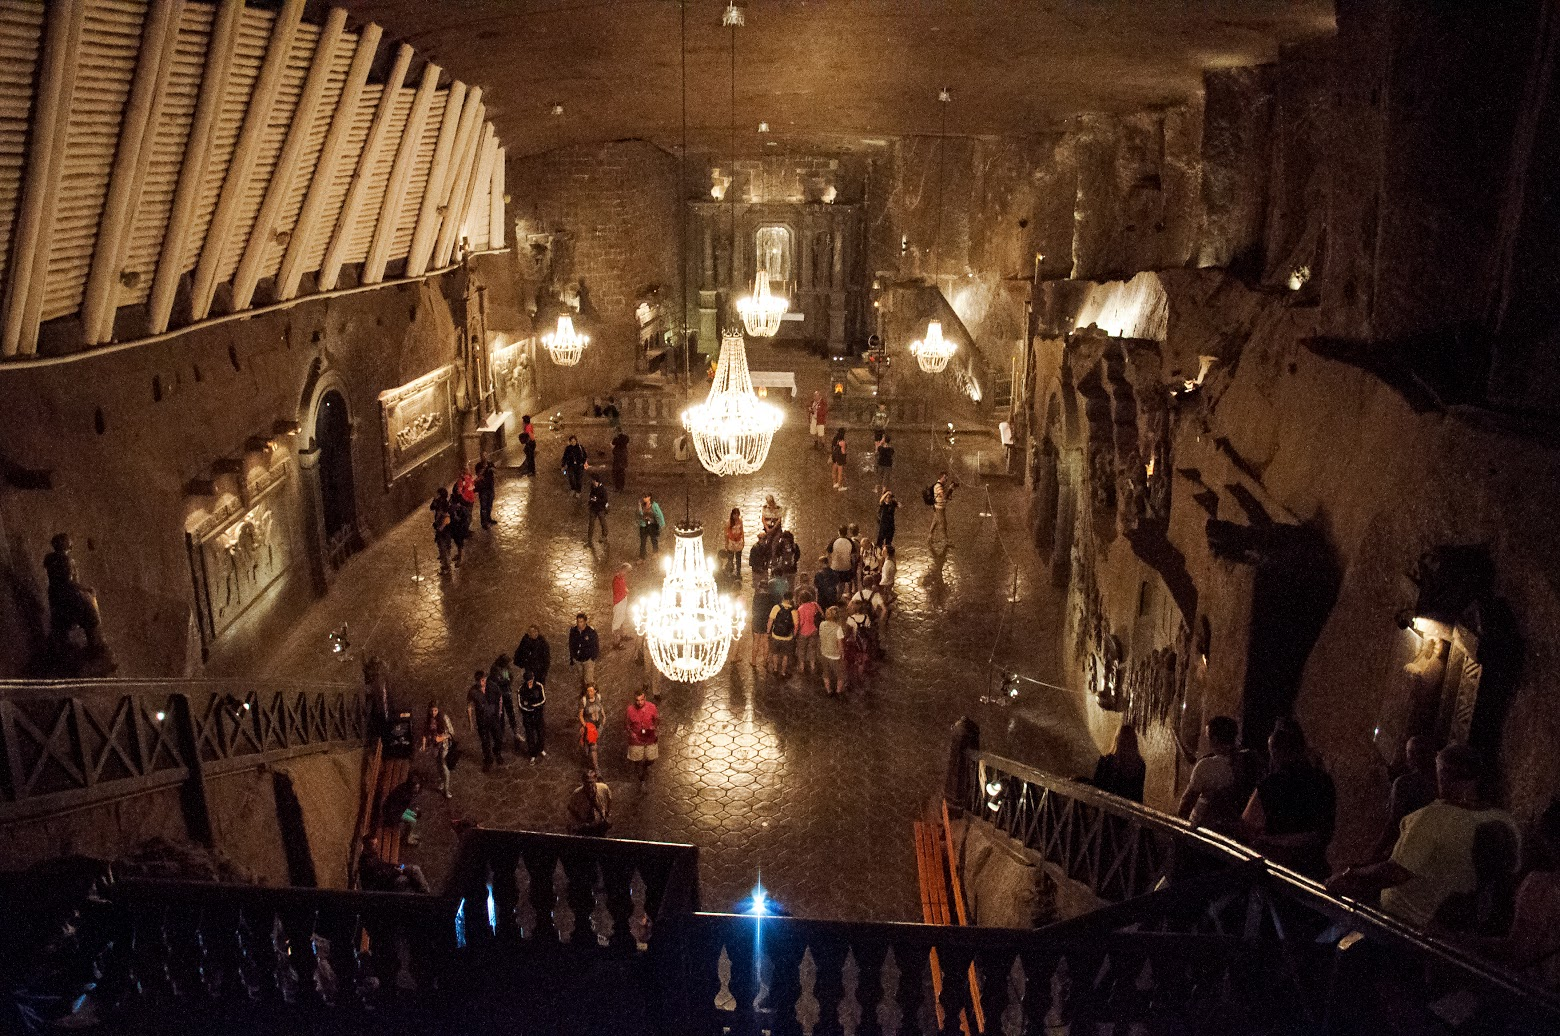 Krakow Salt Mine Tour